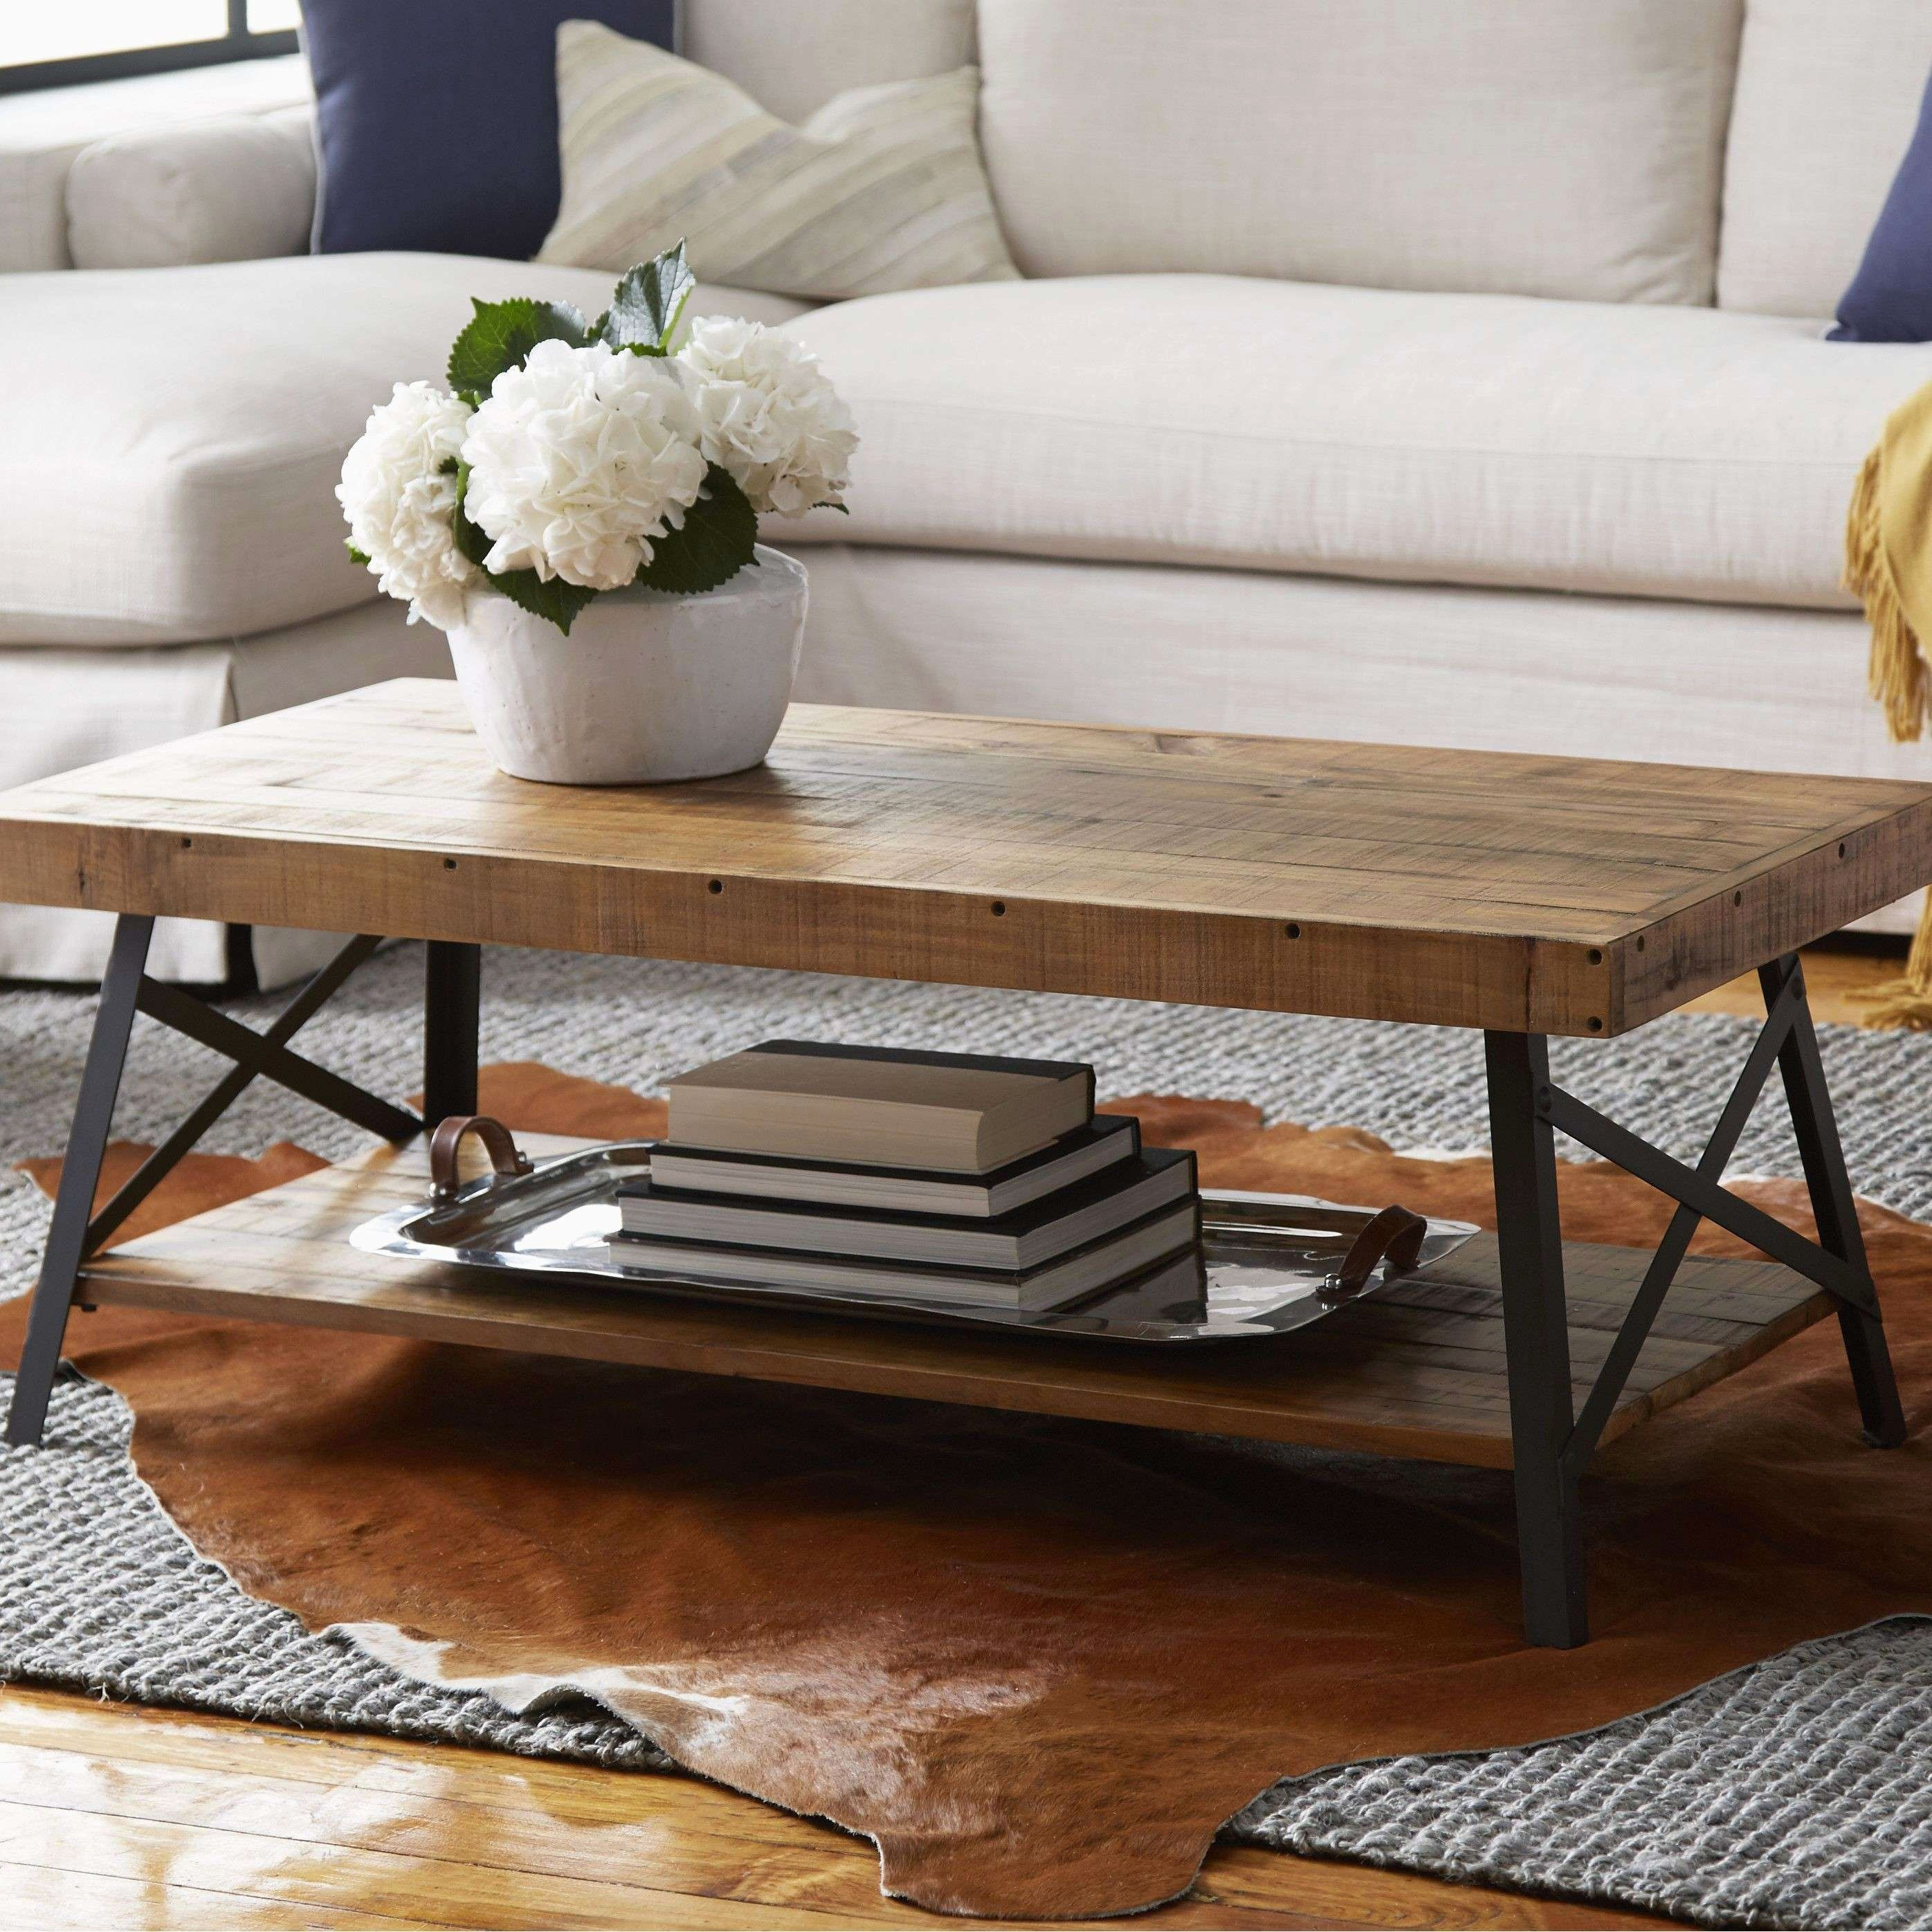 couches for dark hardwood floors of dark hardwoods unique dark hardwood floors decorative details intended for dark hardwoods luxury modern small table design luxury cover coffee table best 0d modern pictures